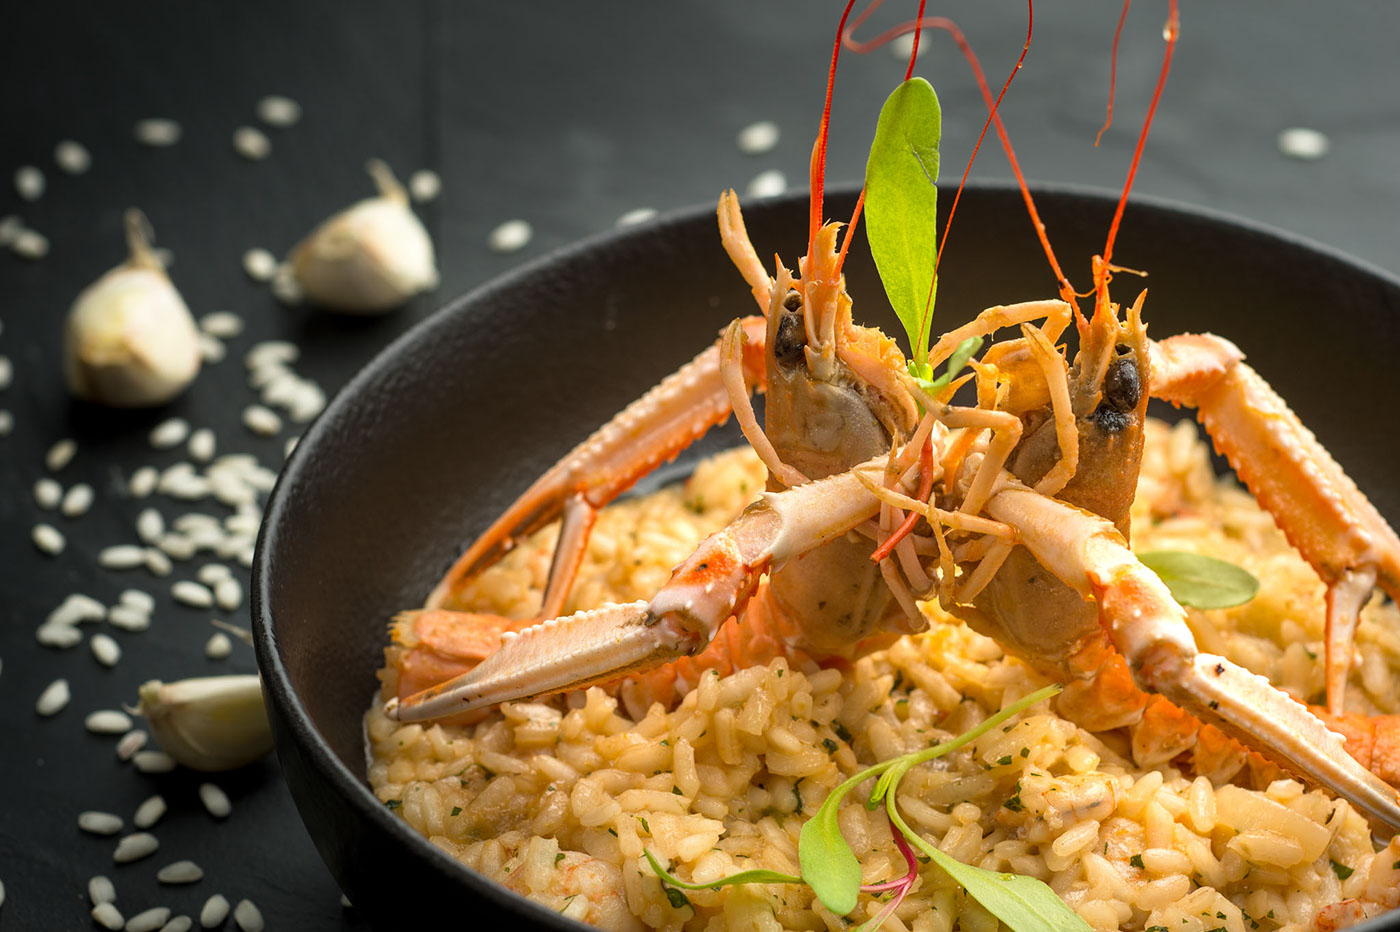 Food  Photography  beverage culinaire Culinary art cooking photo Nikon profoto